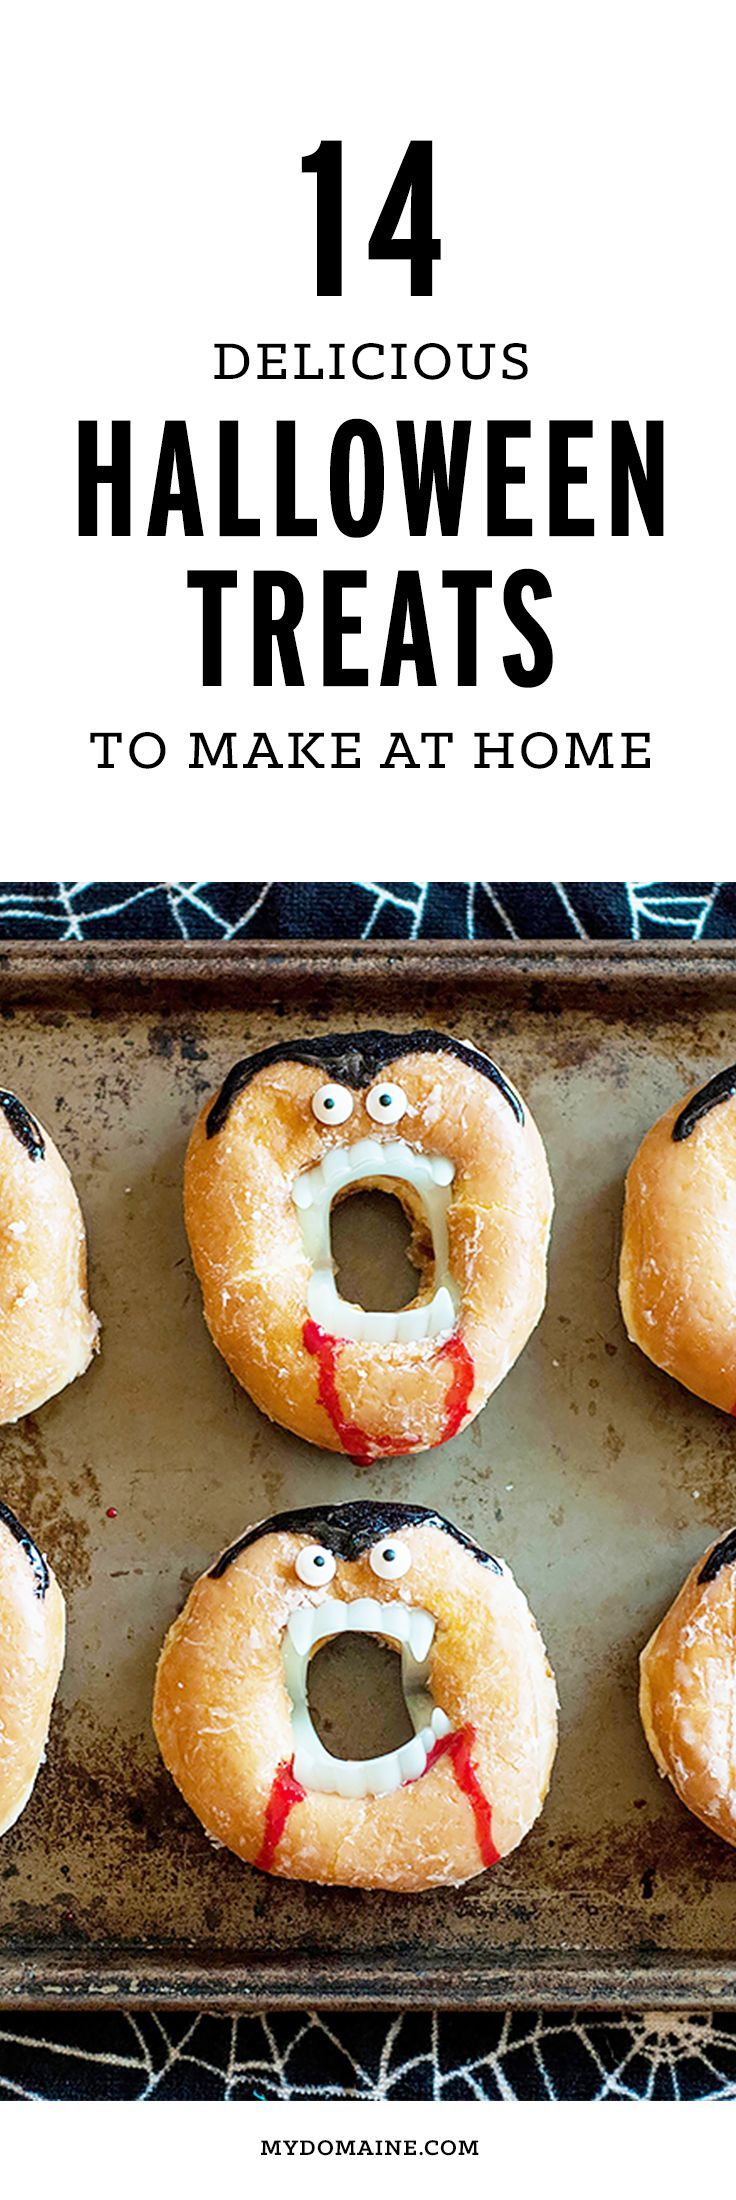 Make your own Halloween treats with these delicious and homemade recipes